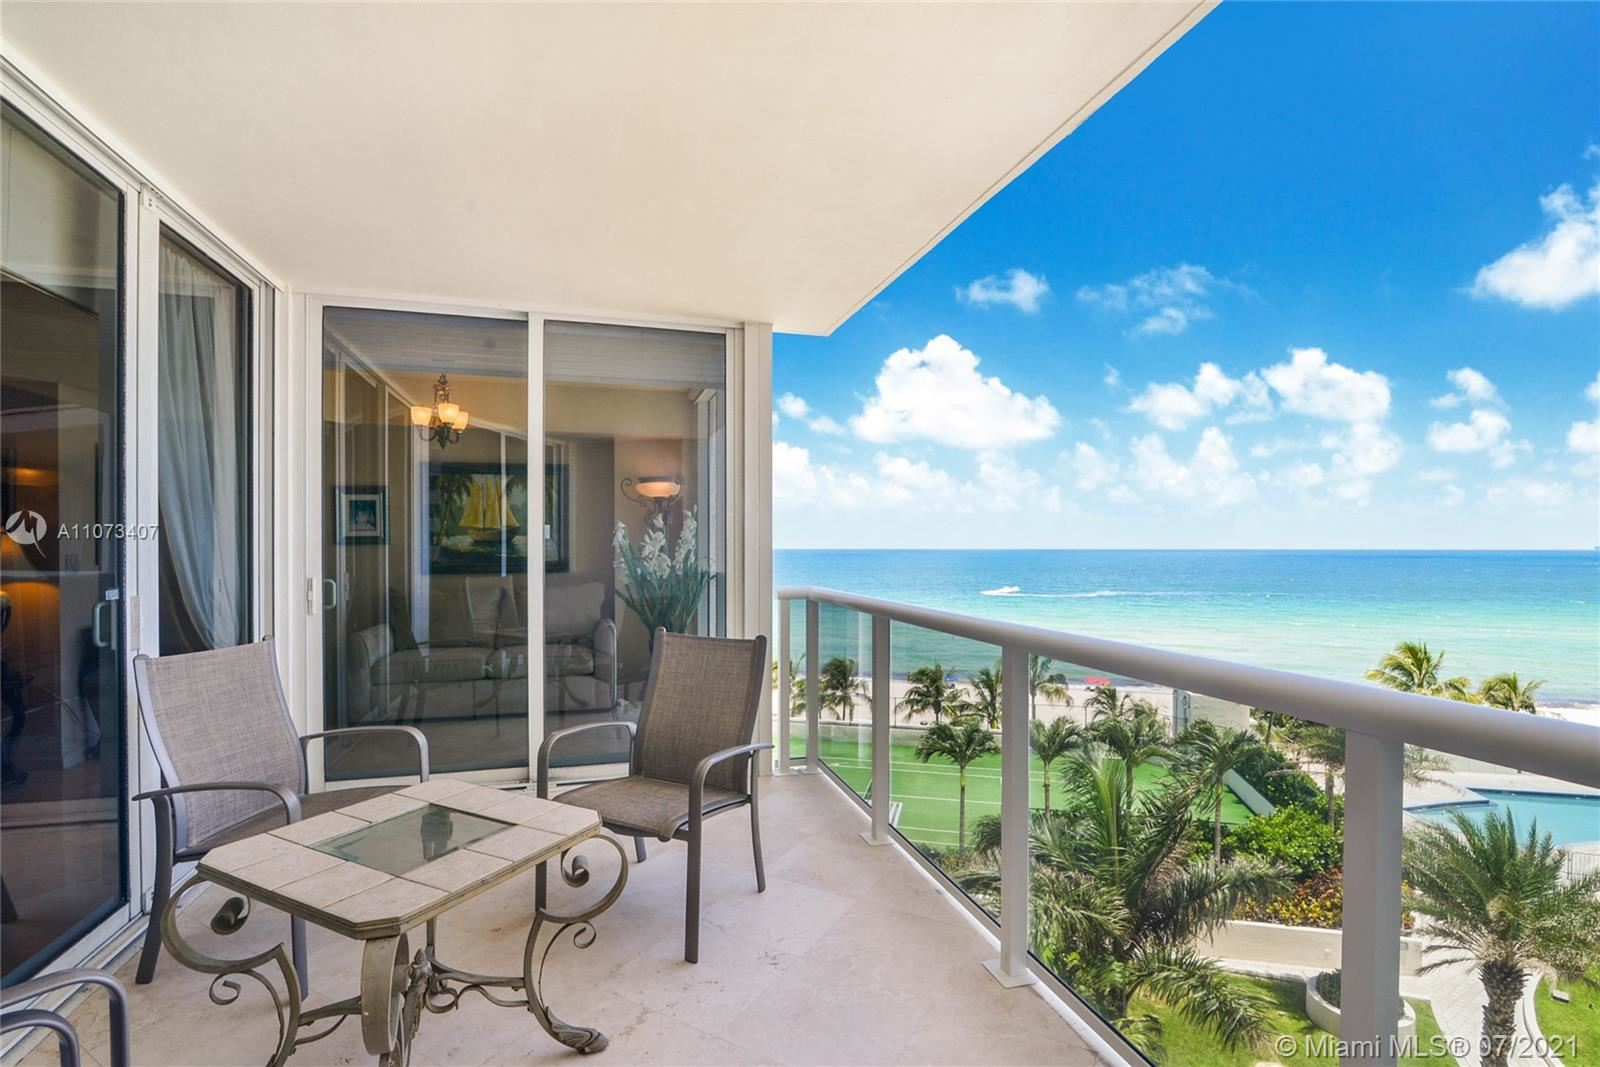 19111 Collins Ave #502, Sunny Isles, FL 33160 - #: A11073407